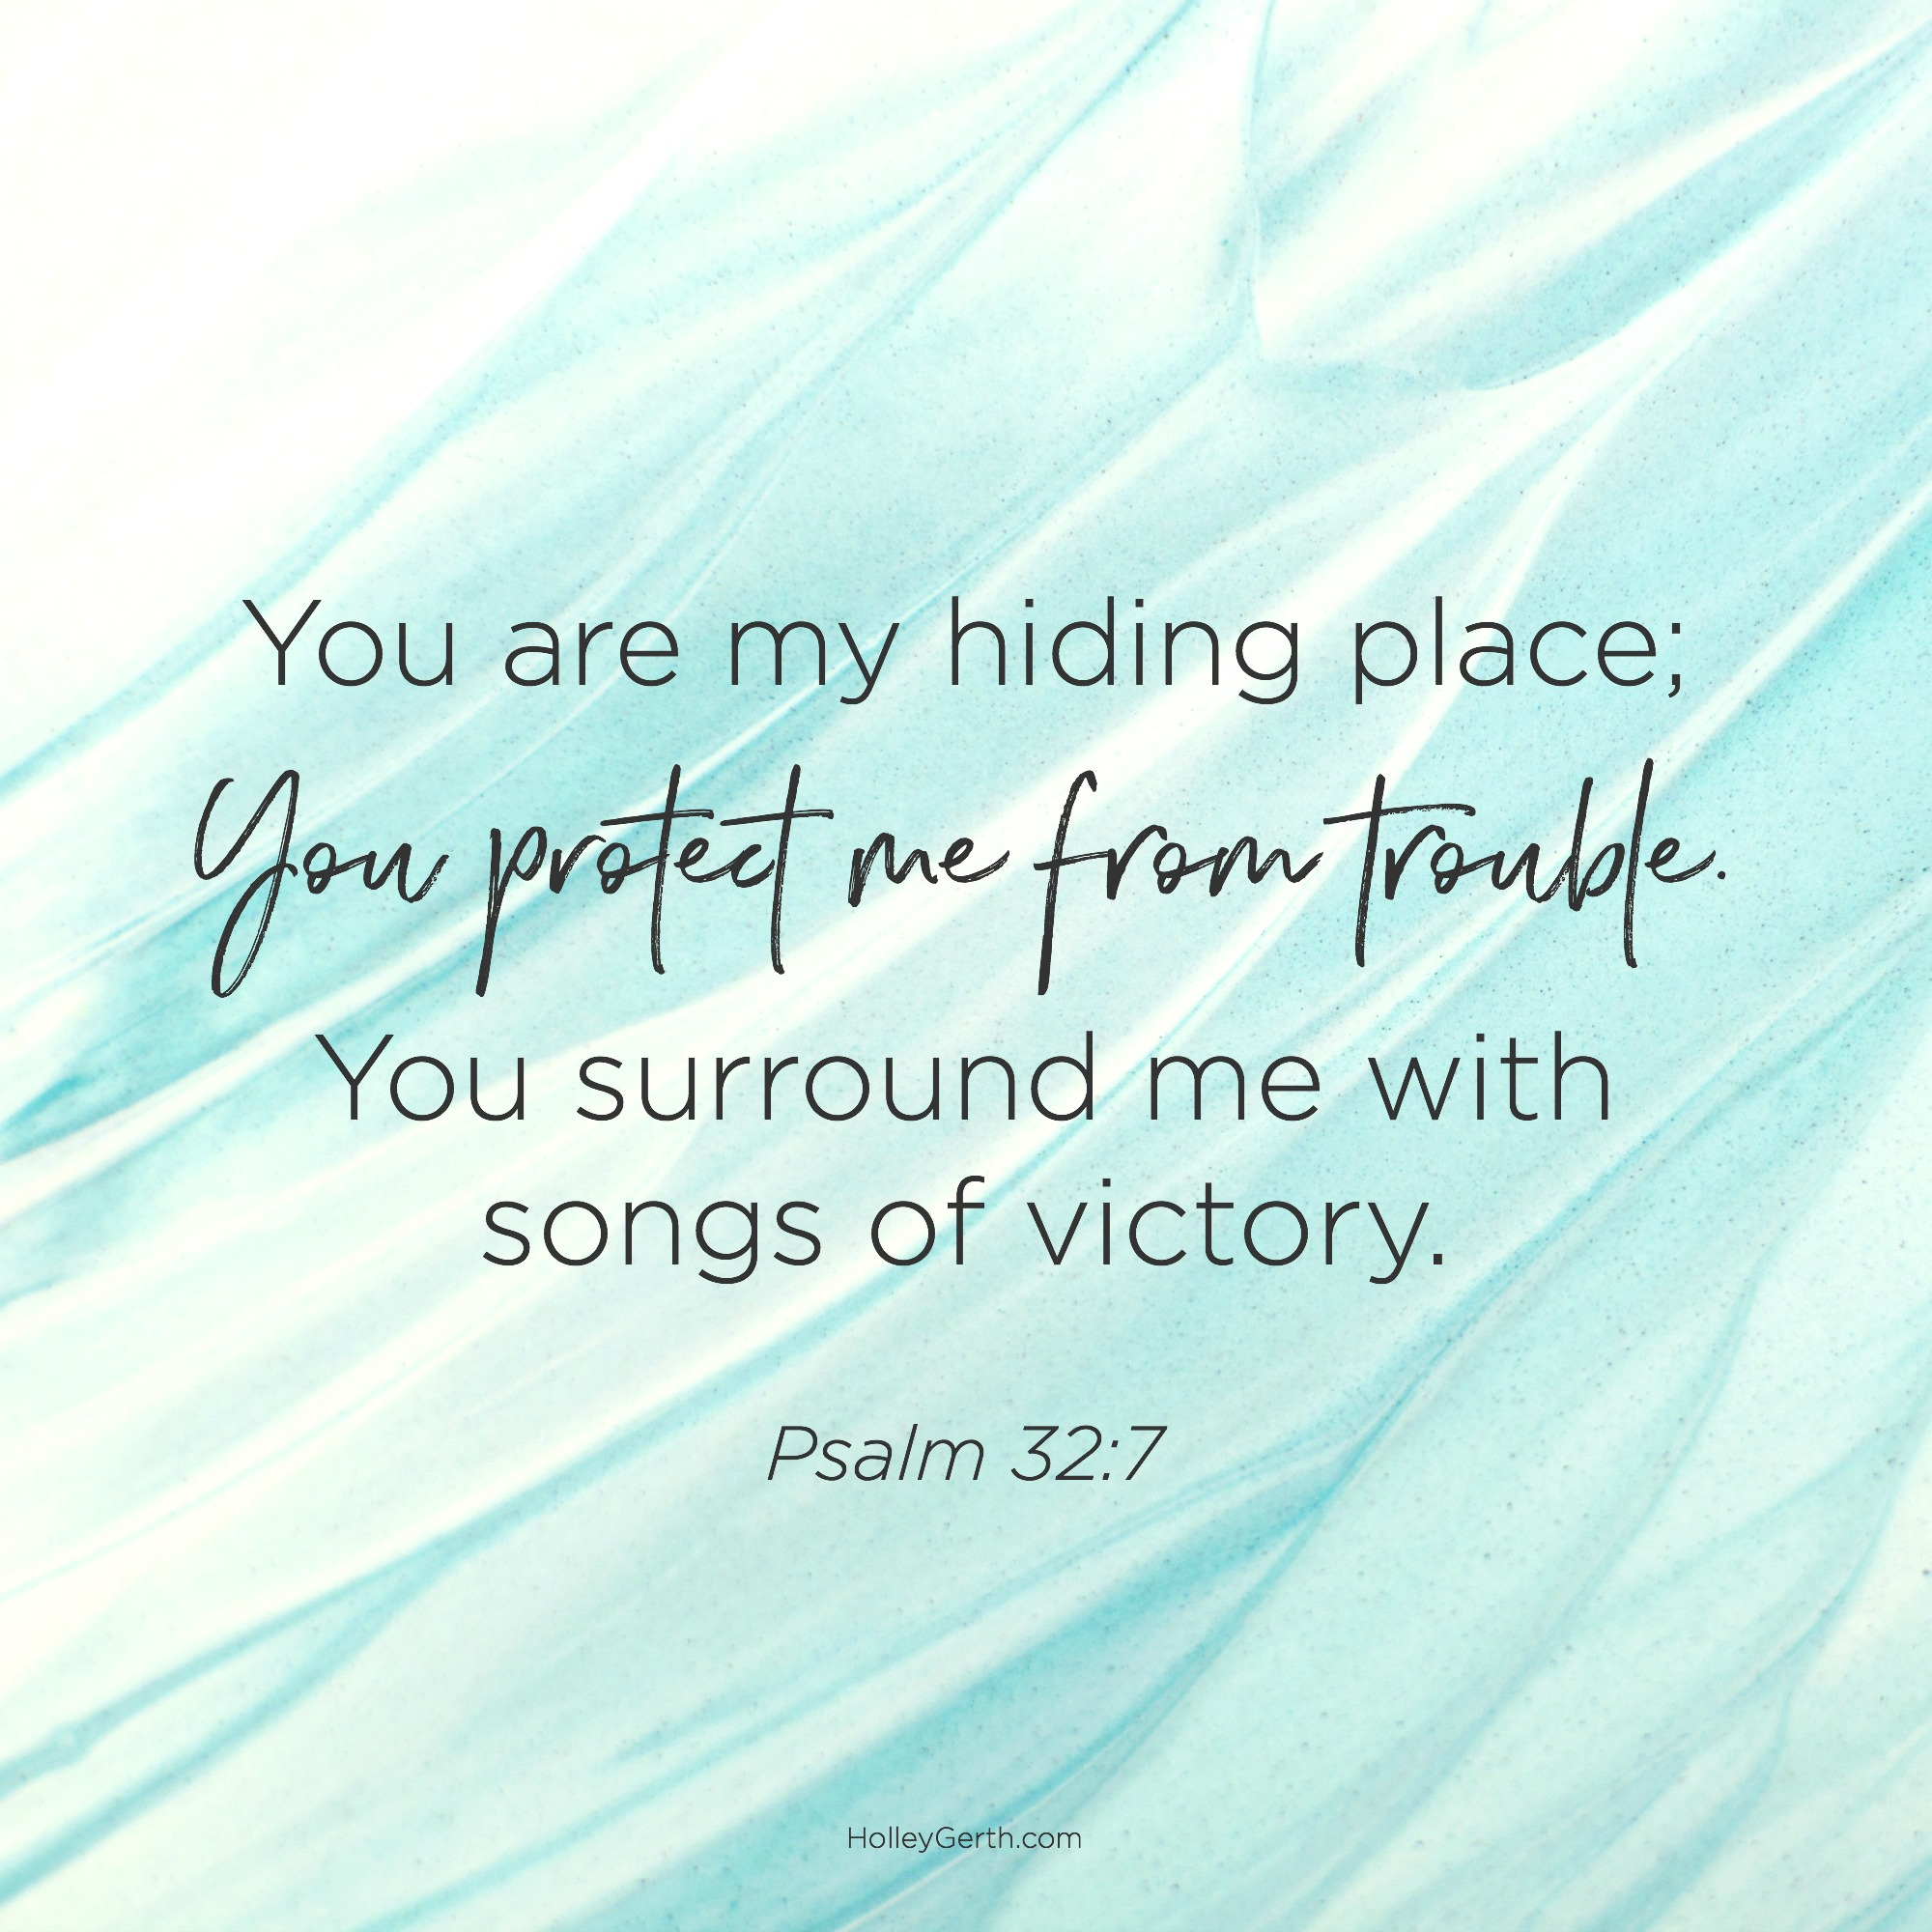 You are my hiding place; You protect me from trouble. You surround me with songs of victory. Psalm 32:7